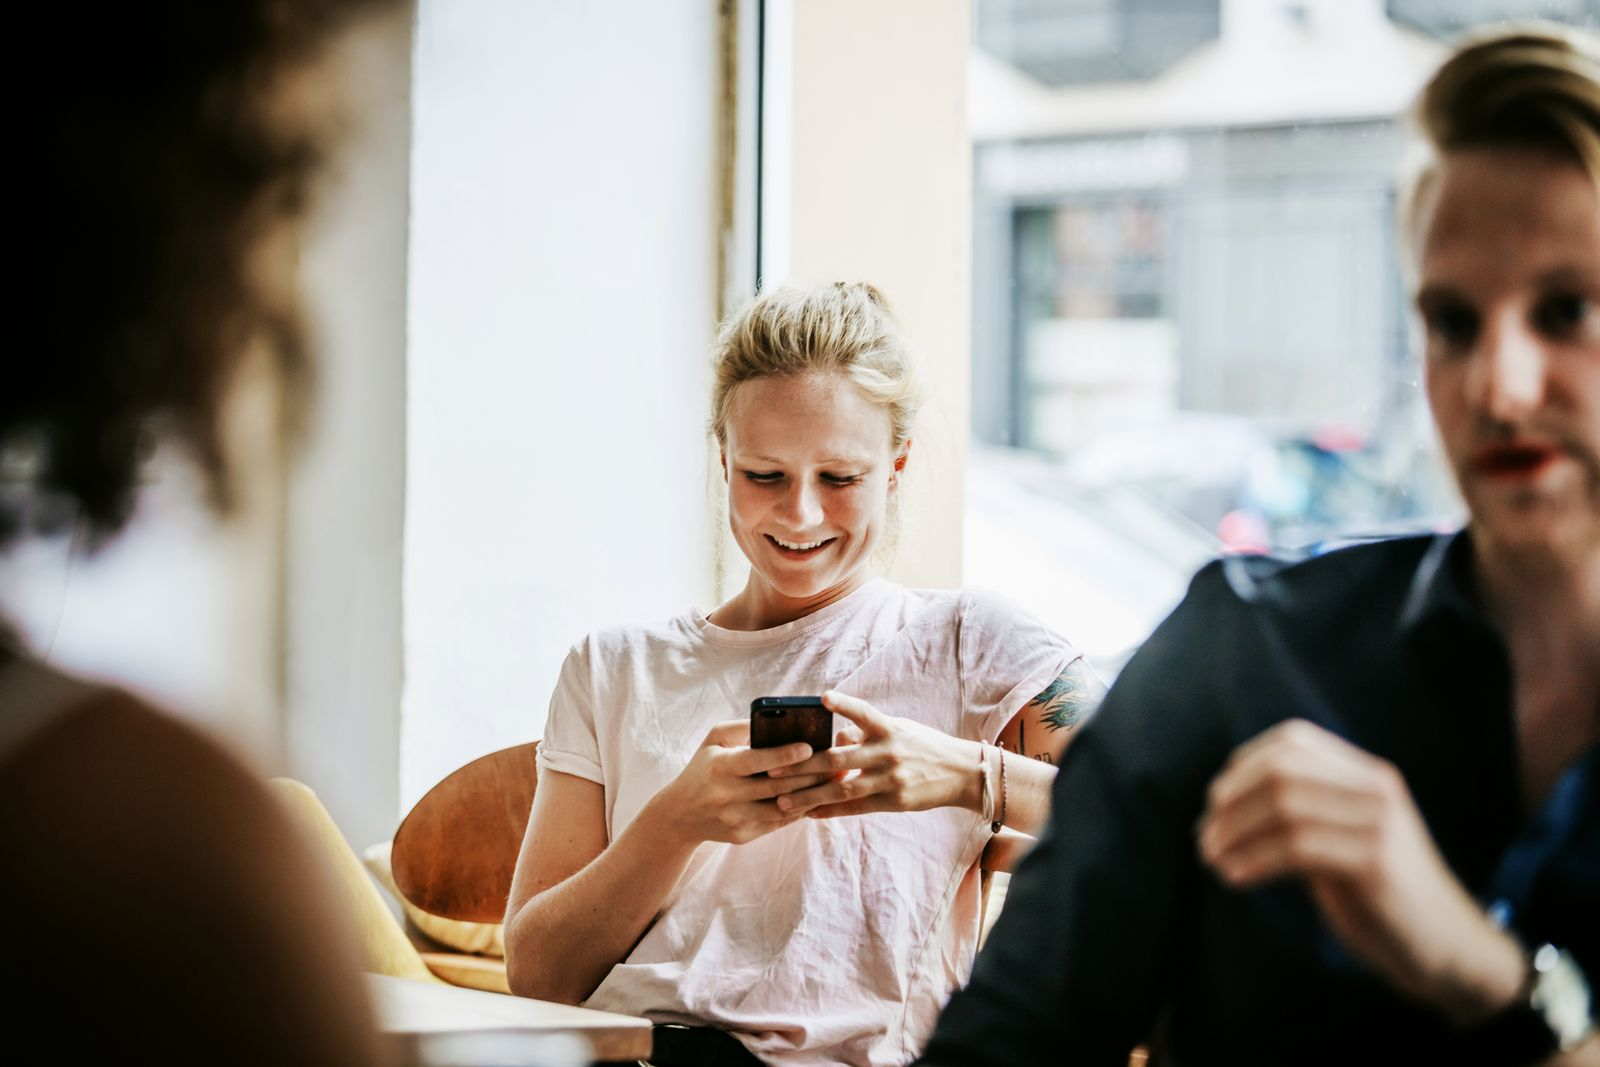 Young Woman Smiling While Messaging Friends On Smartphone In Cafe